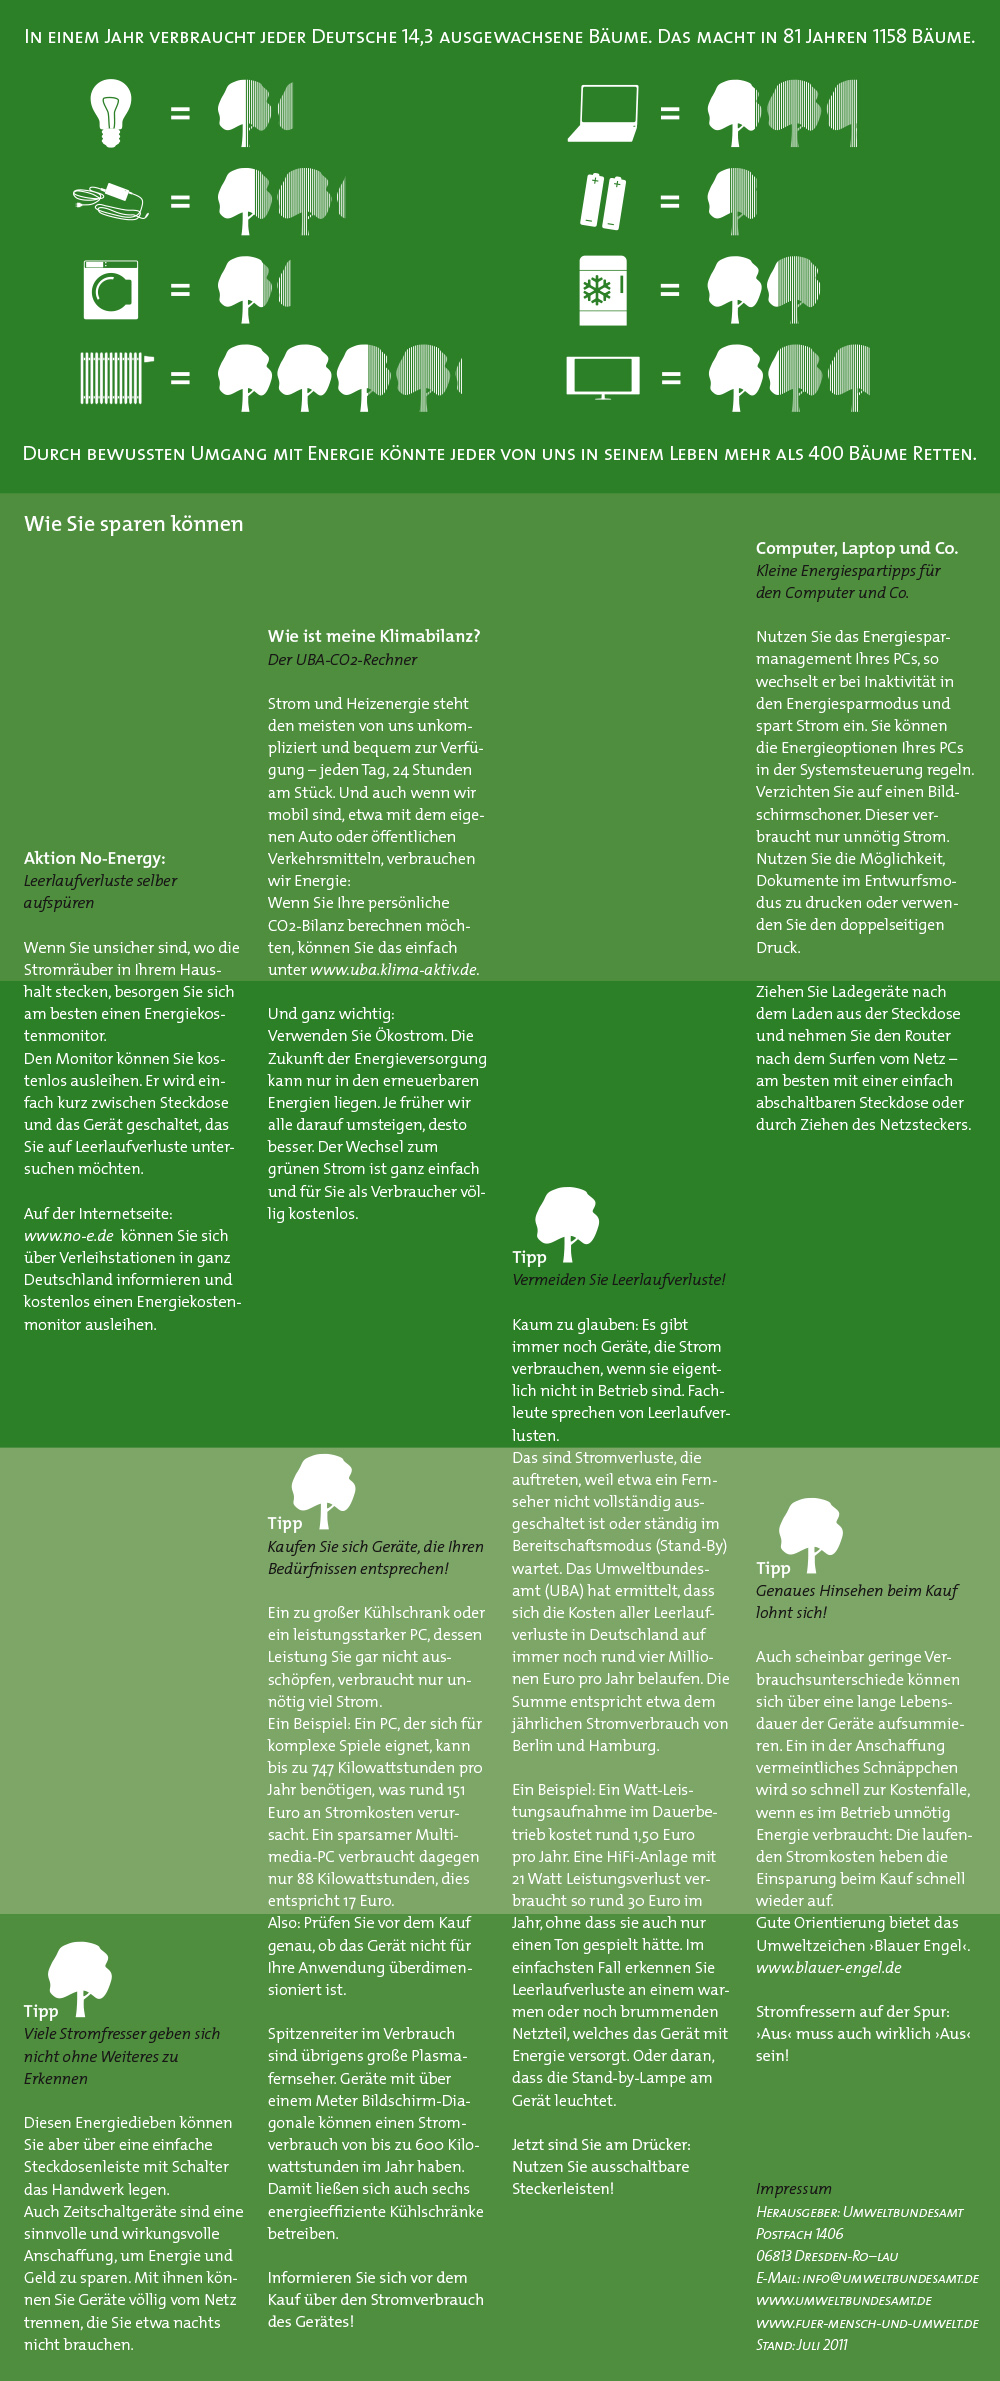 a whole leaflet showing advice on how to save energy